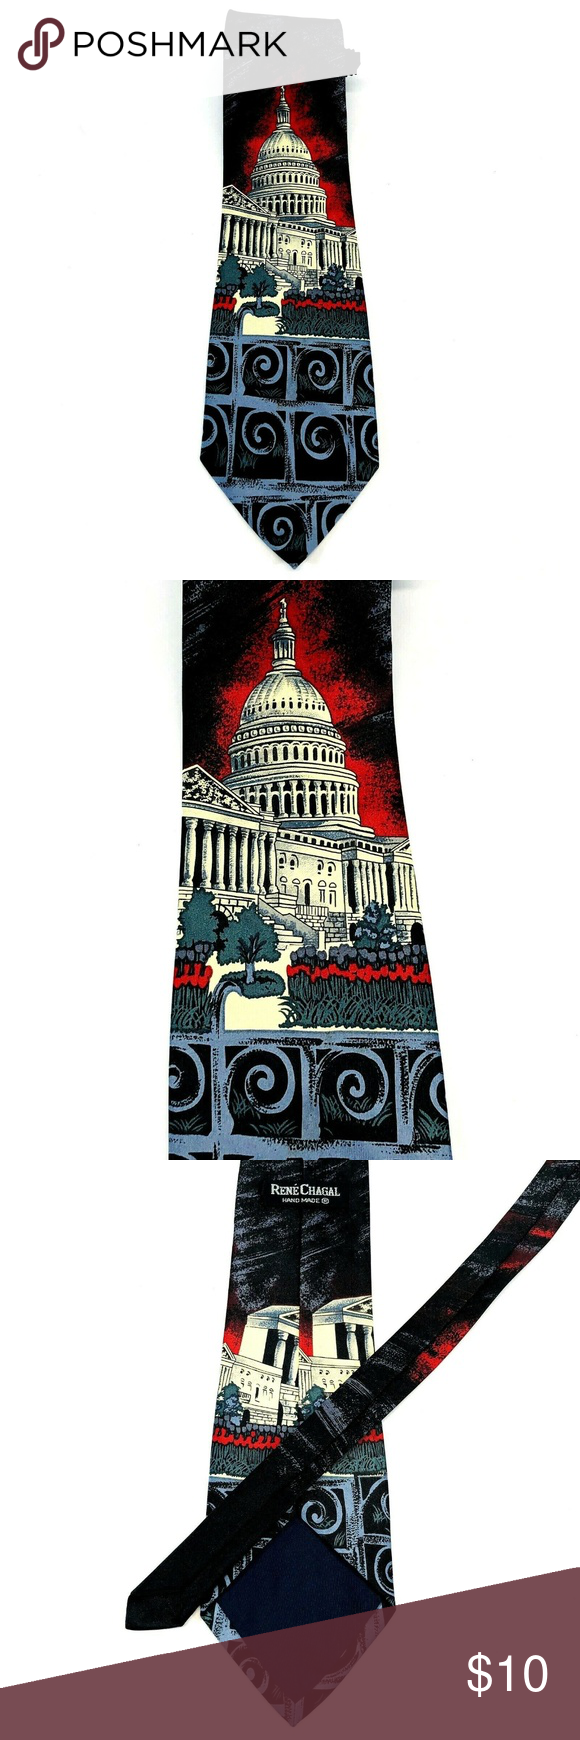 Rene Chagal America Capitol Hill Silk Necktie Tie New Without Tags/Unworn 100% Handmade Silk Smoke and pet free home Colors: Black/White/Blue/Red 080919-12-602NT3 Renea Chagal Accessories Ties